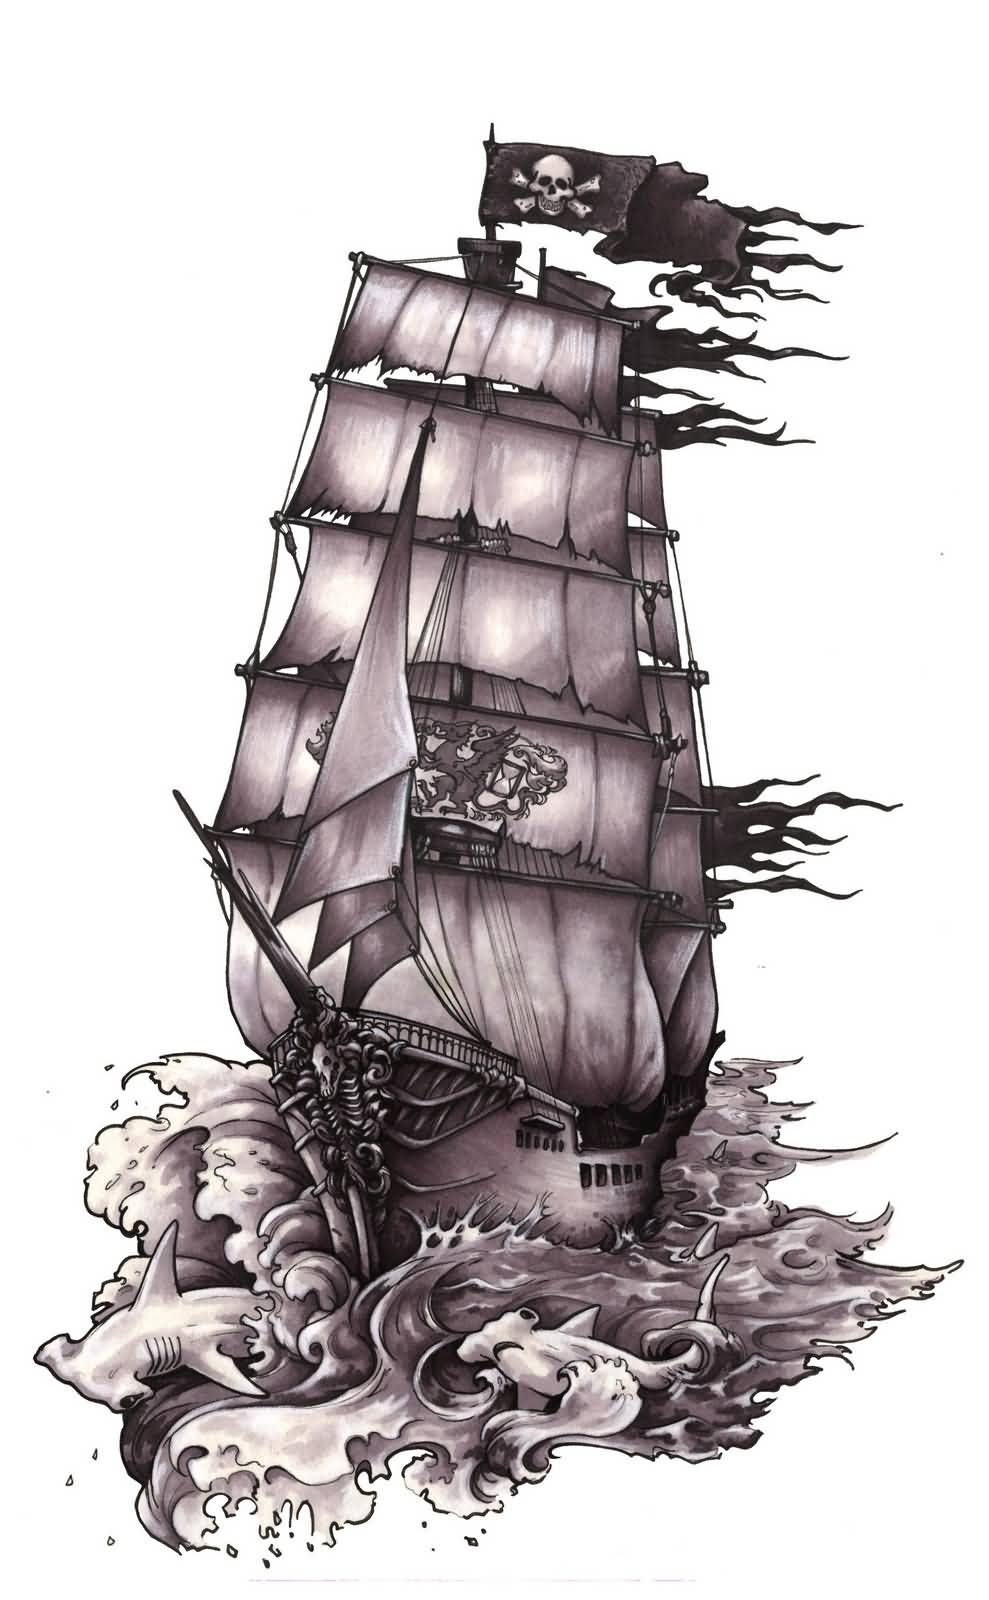 Awesome Pirate Ship With Hammerhead Shark Tattoo Design Pirate Tattoo Pirate Ship Tattoos Ship Tattoo